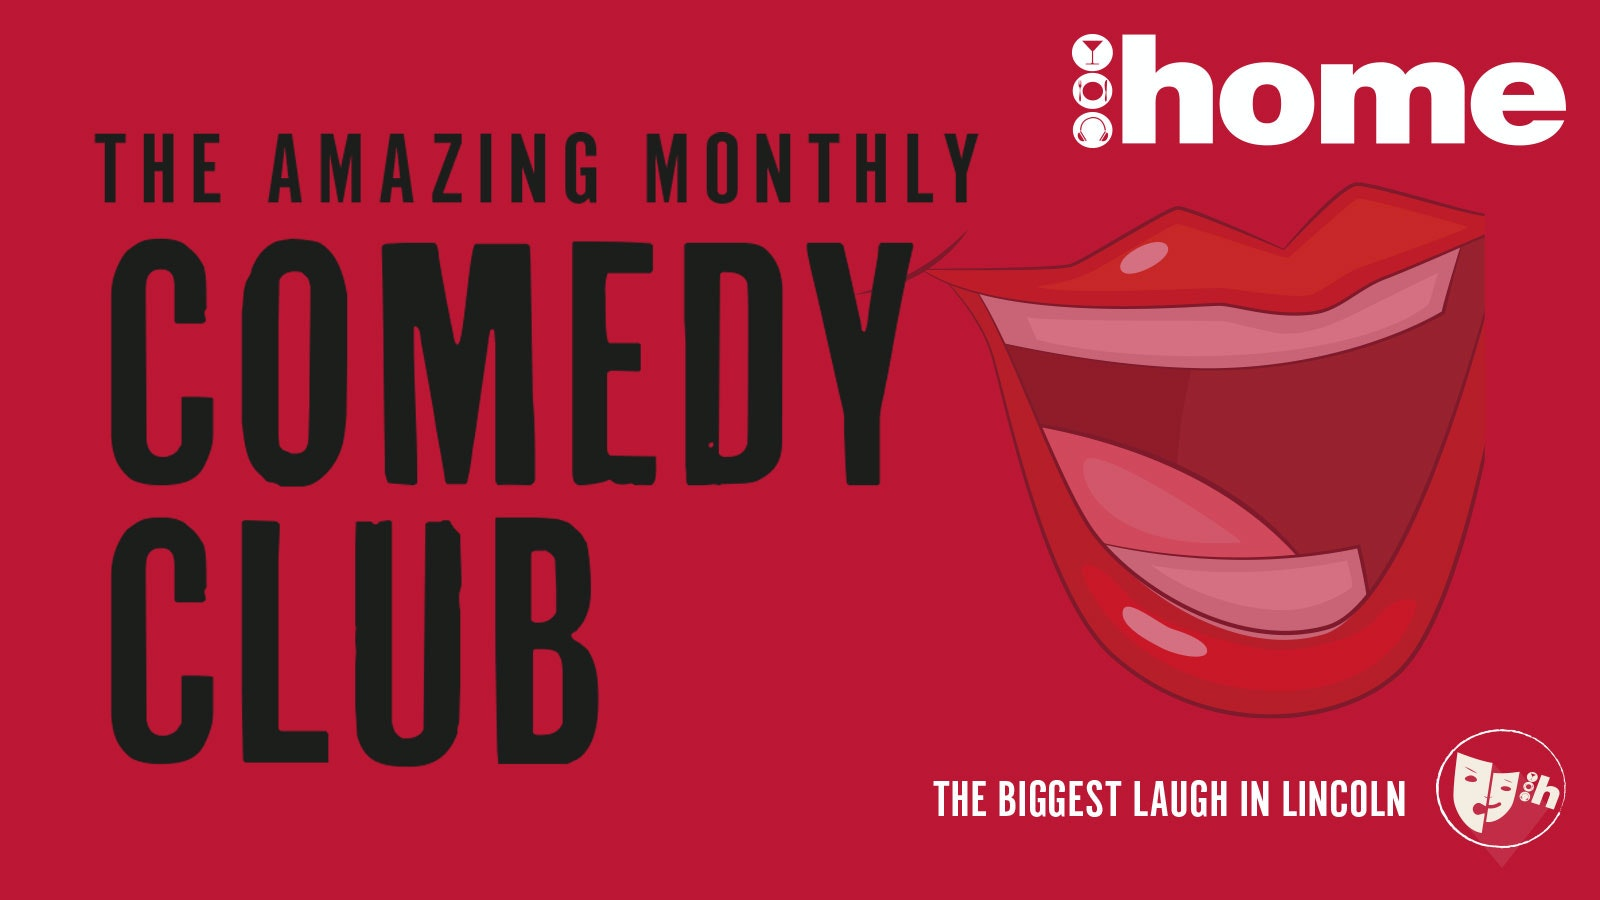 Octobers Comedy Club (Part 2)